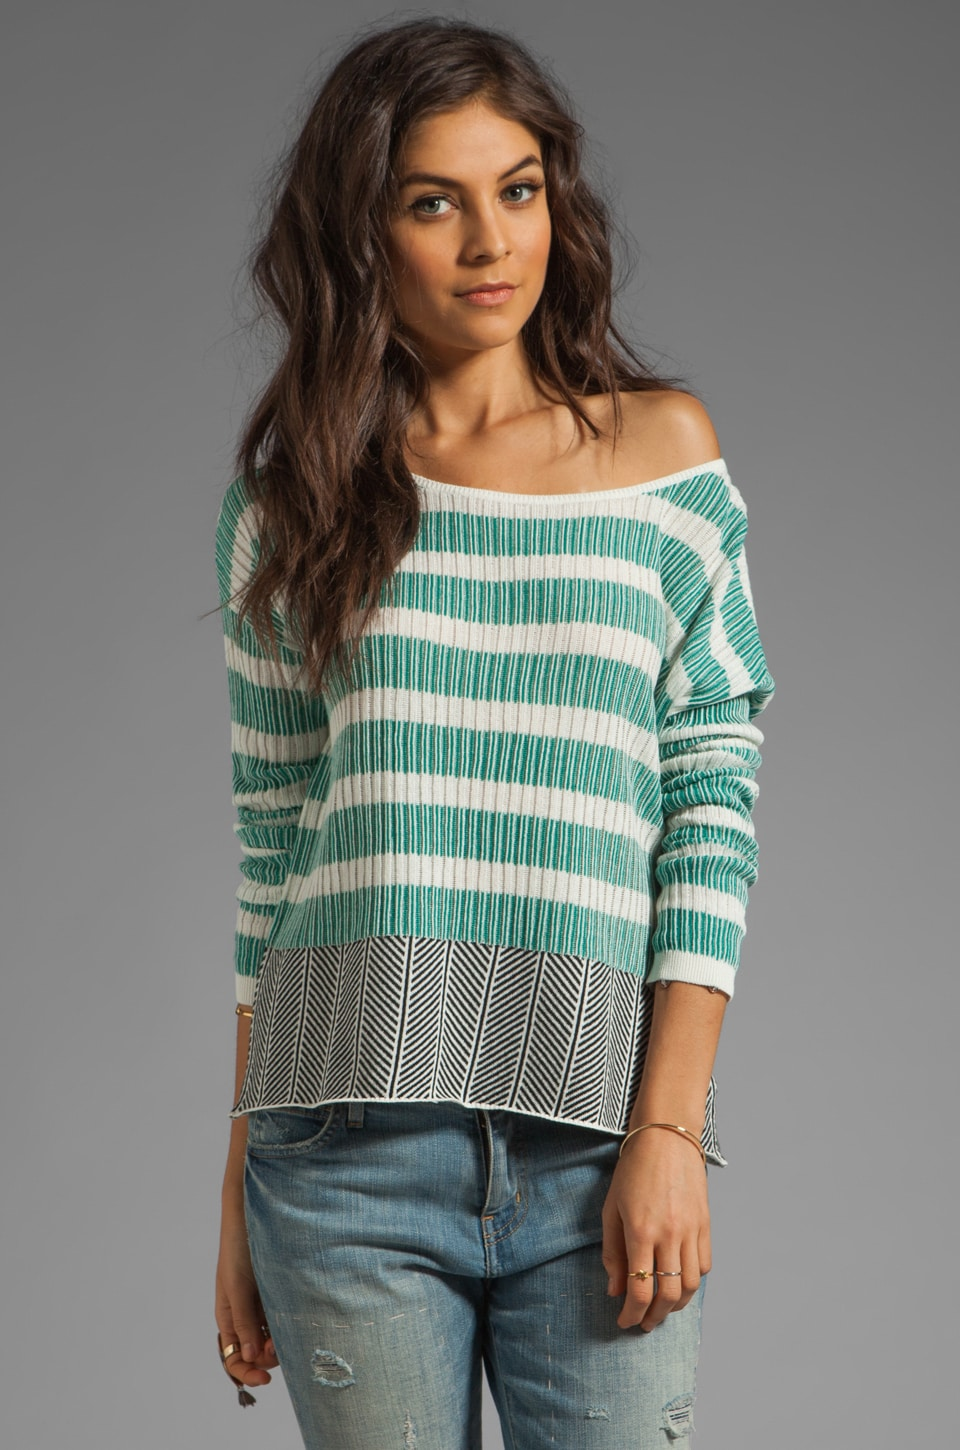 BB Dakota Adalyn Stripe Cotton Sweater in Black/Ivory/Persian Teal